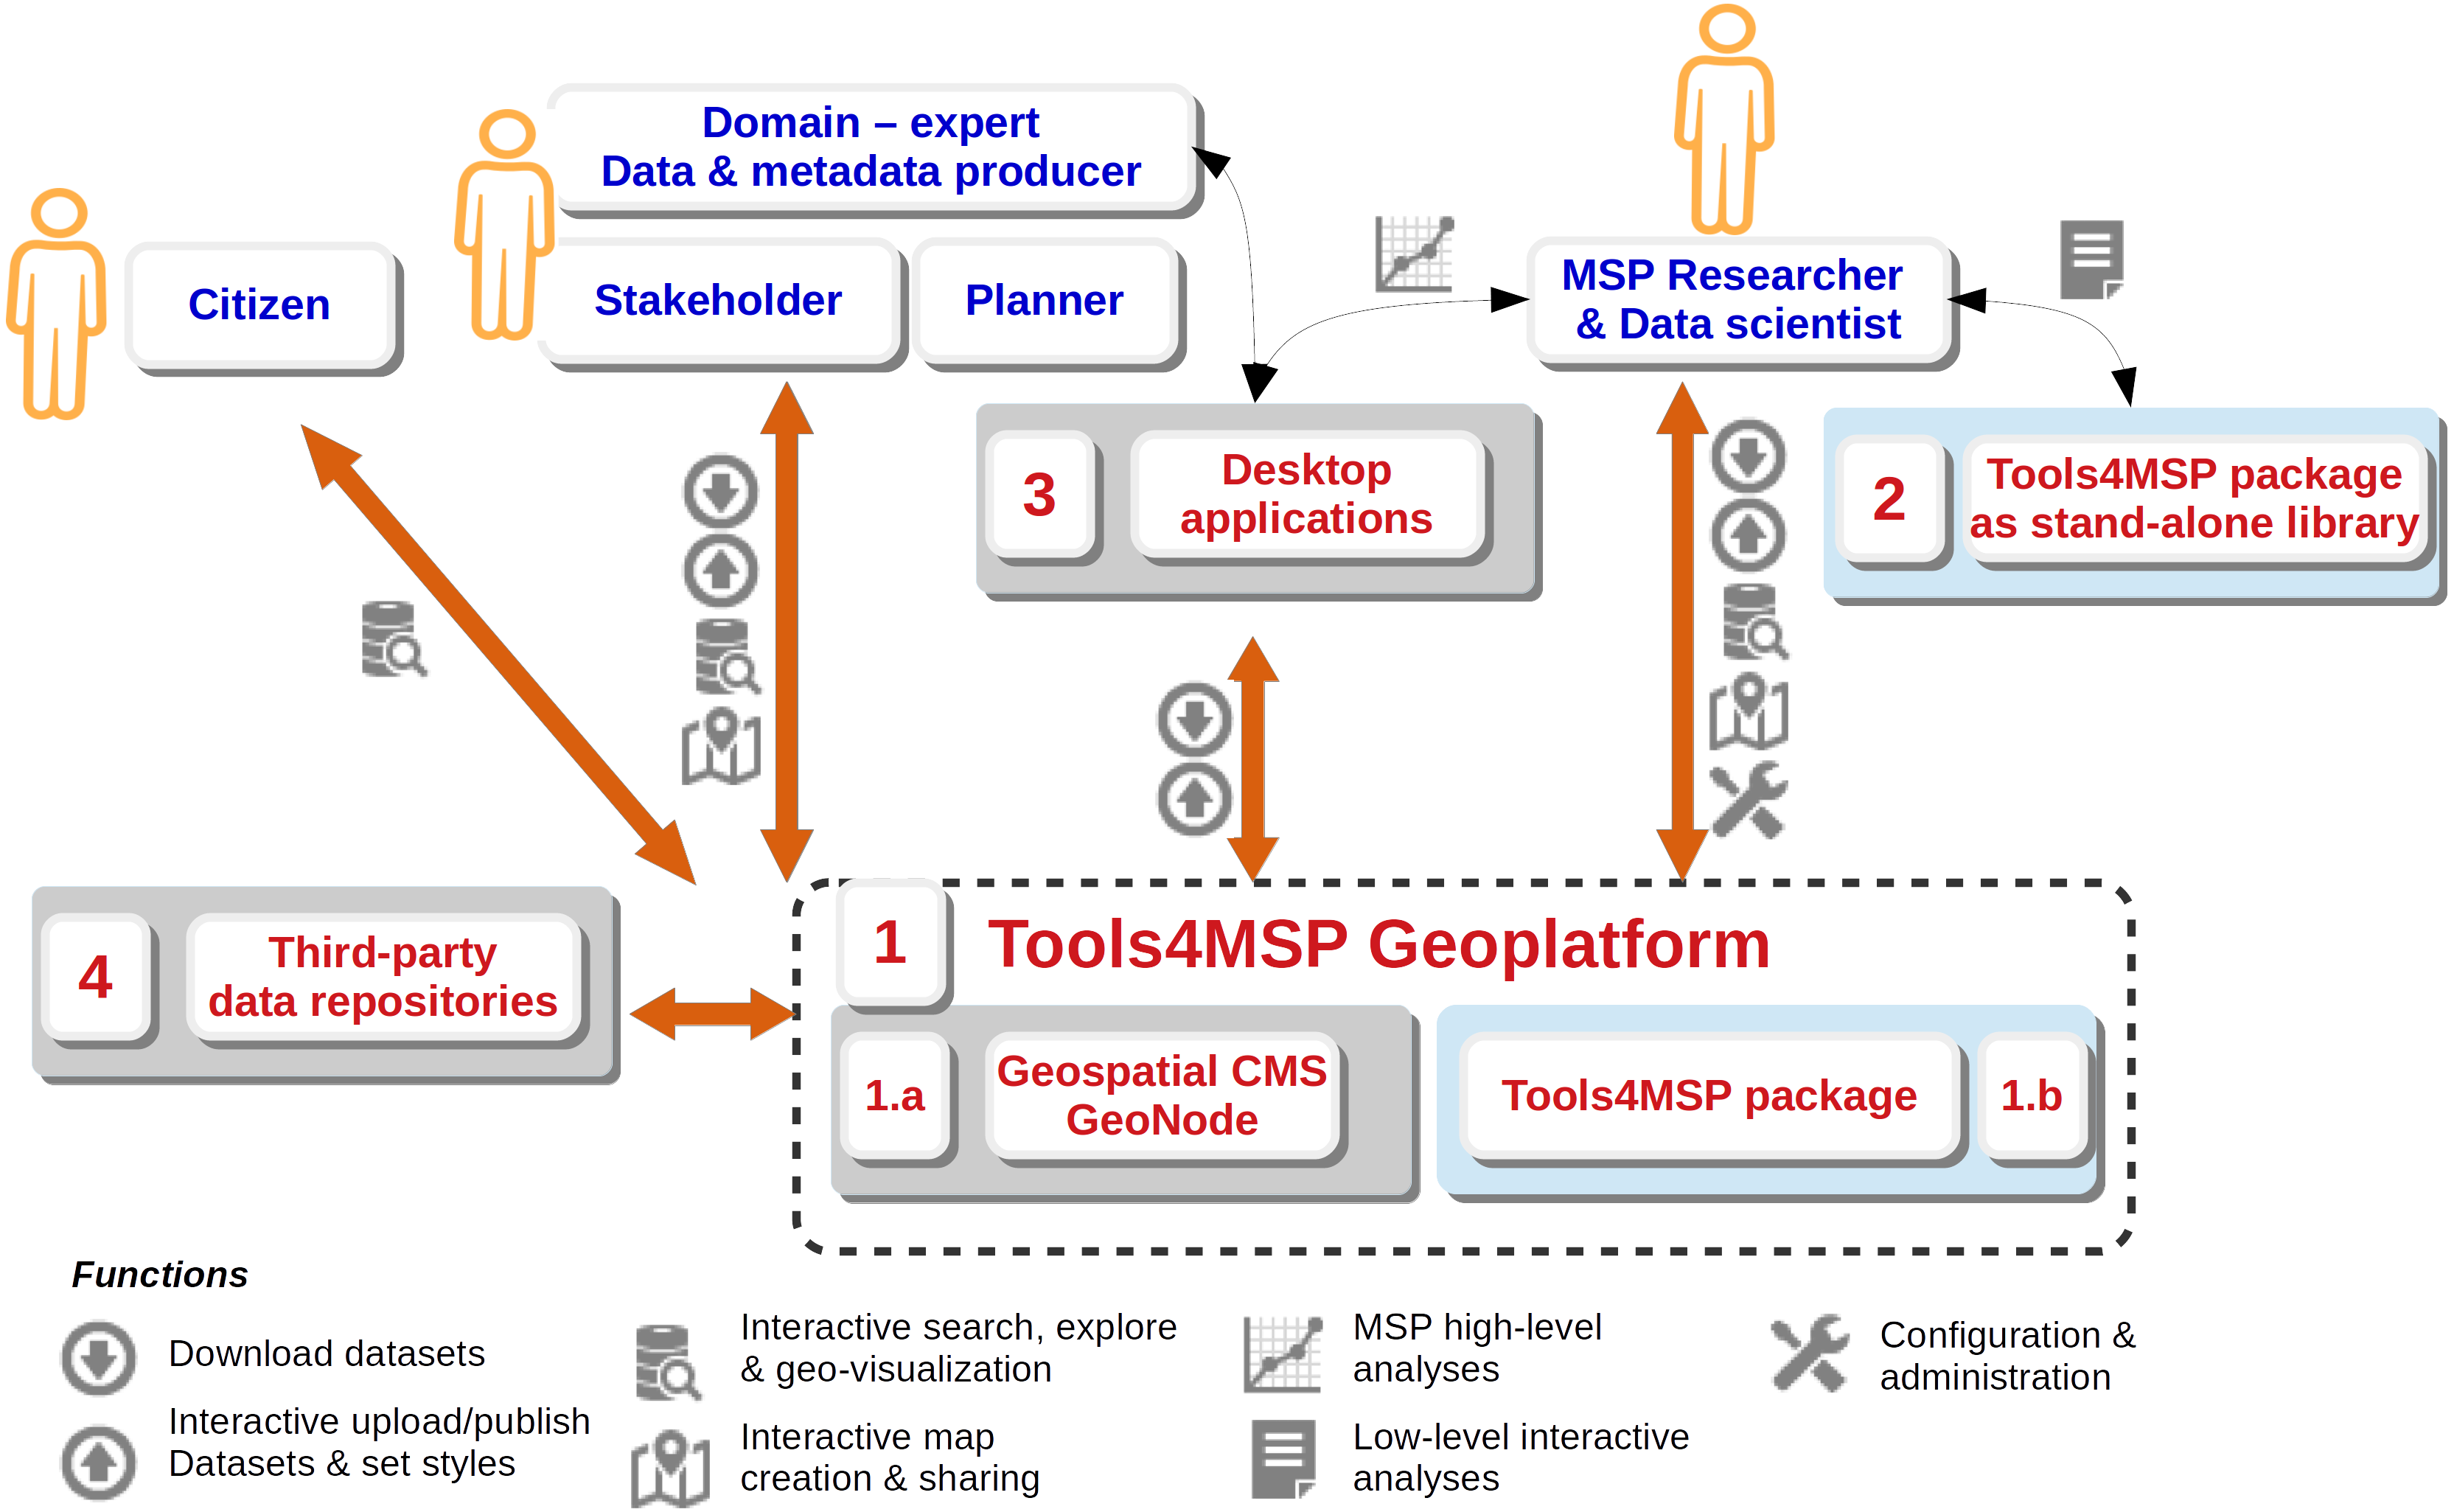 Tools4MSP: an open source software package to support